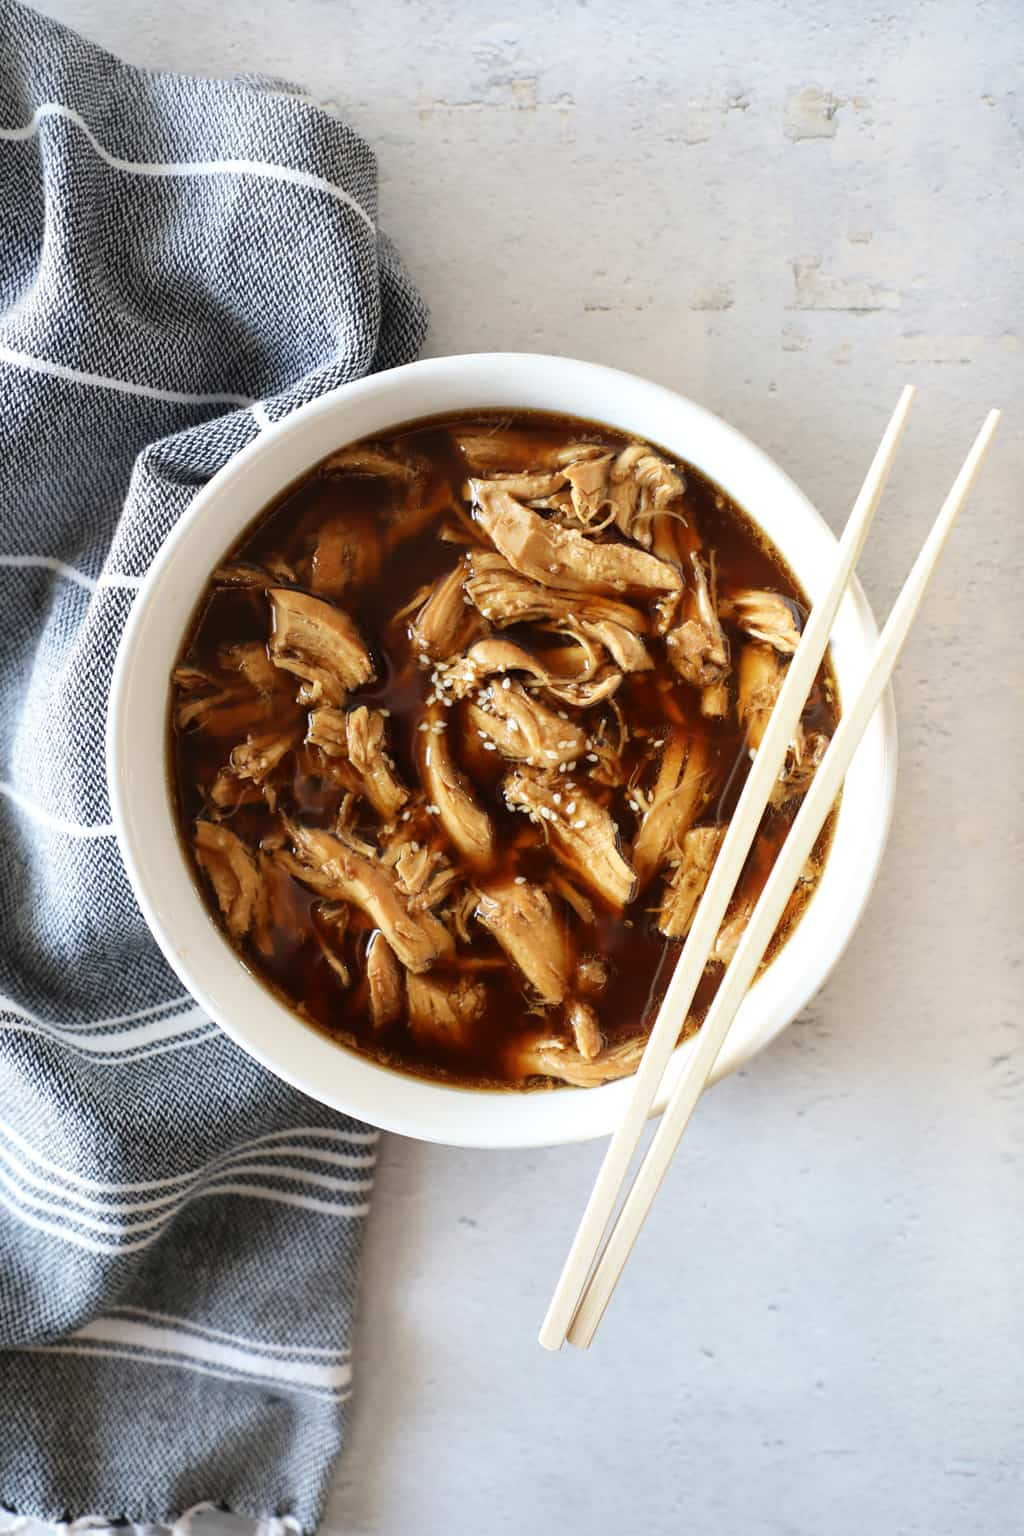 teriyaki chicken in a white bowl next to a grey tea towel and chopsticks